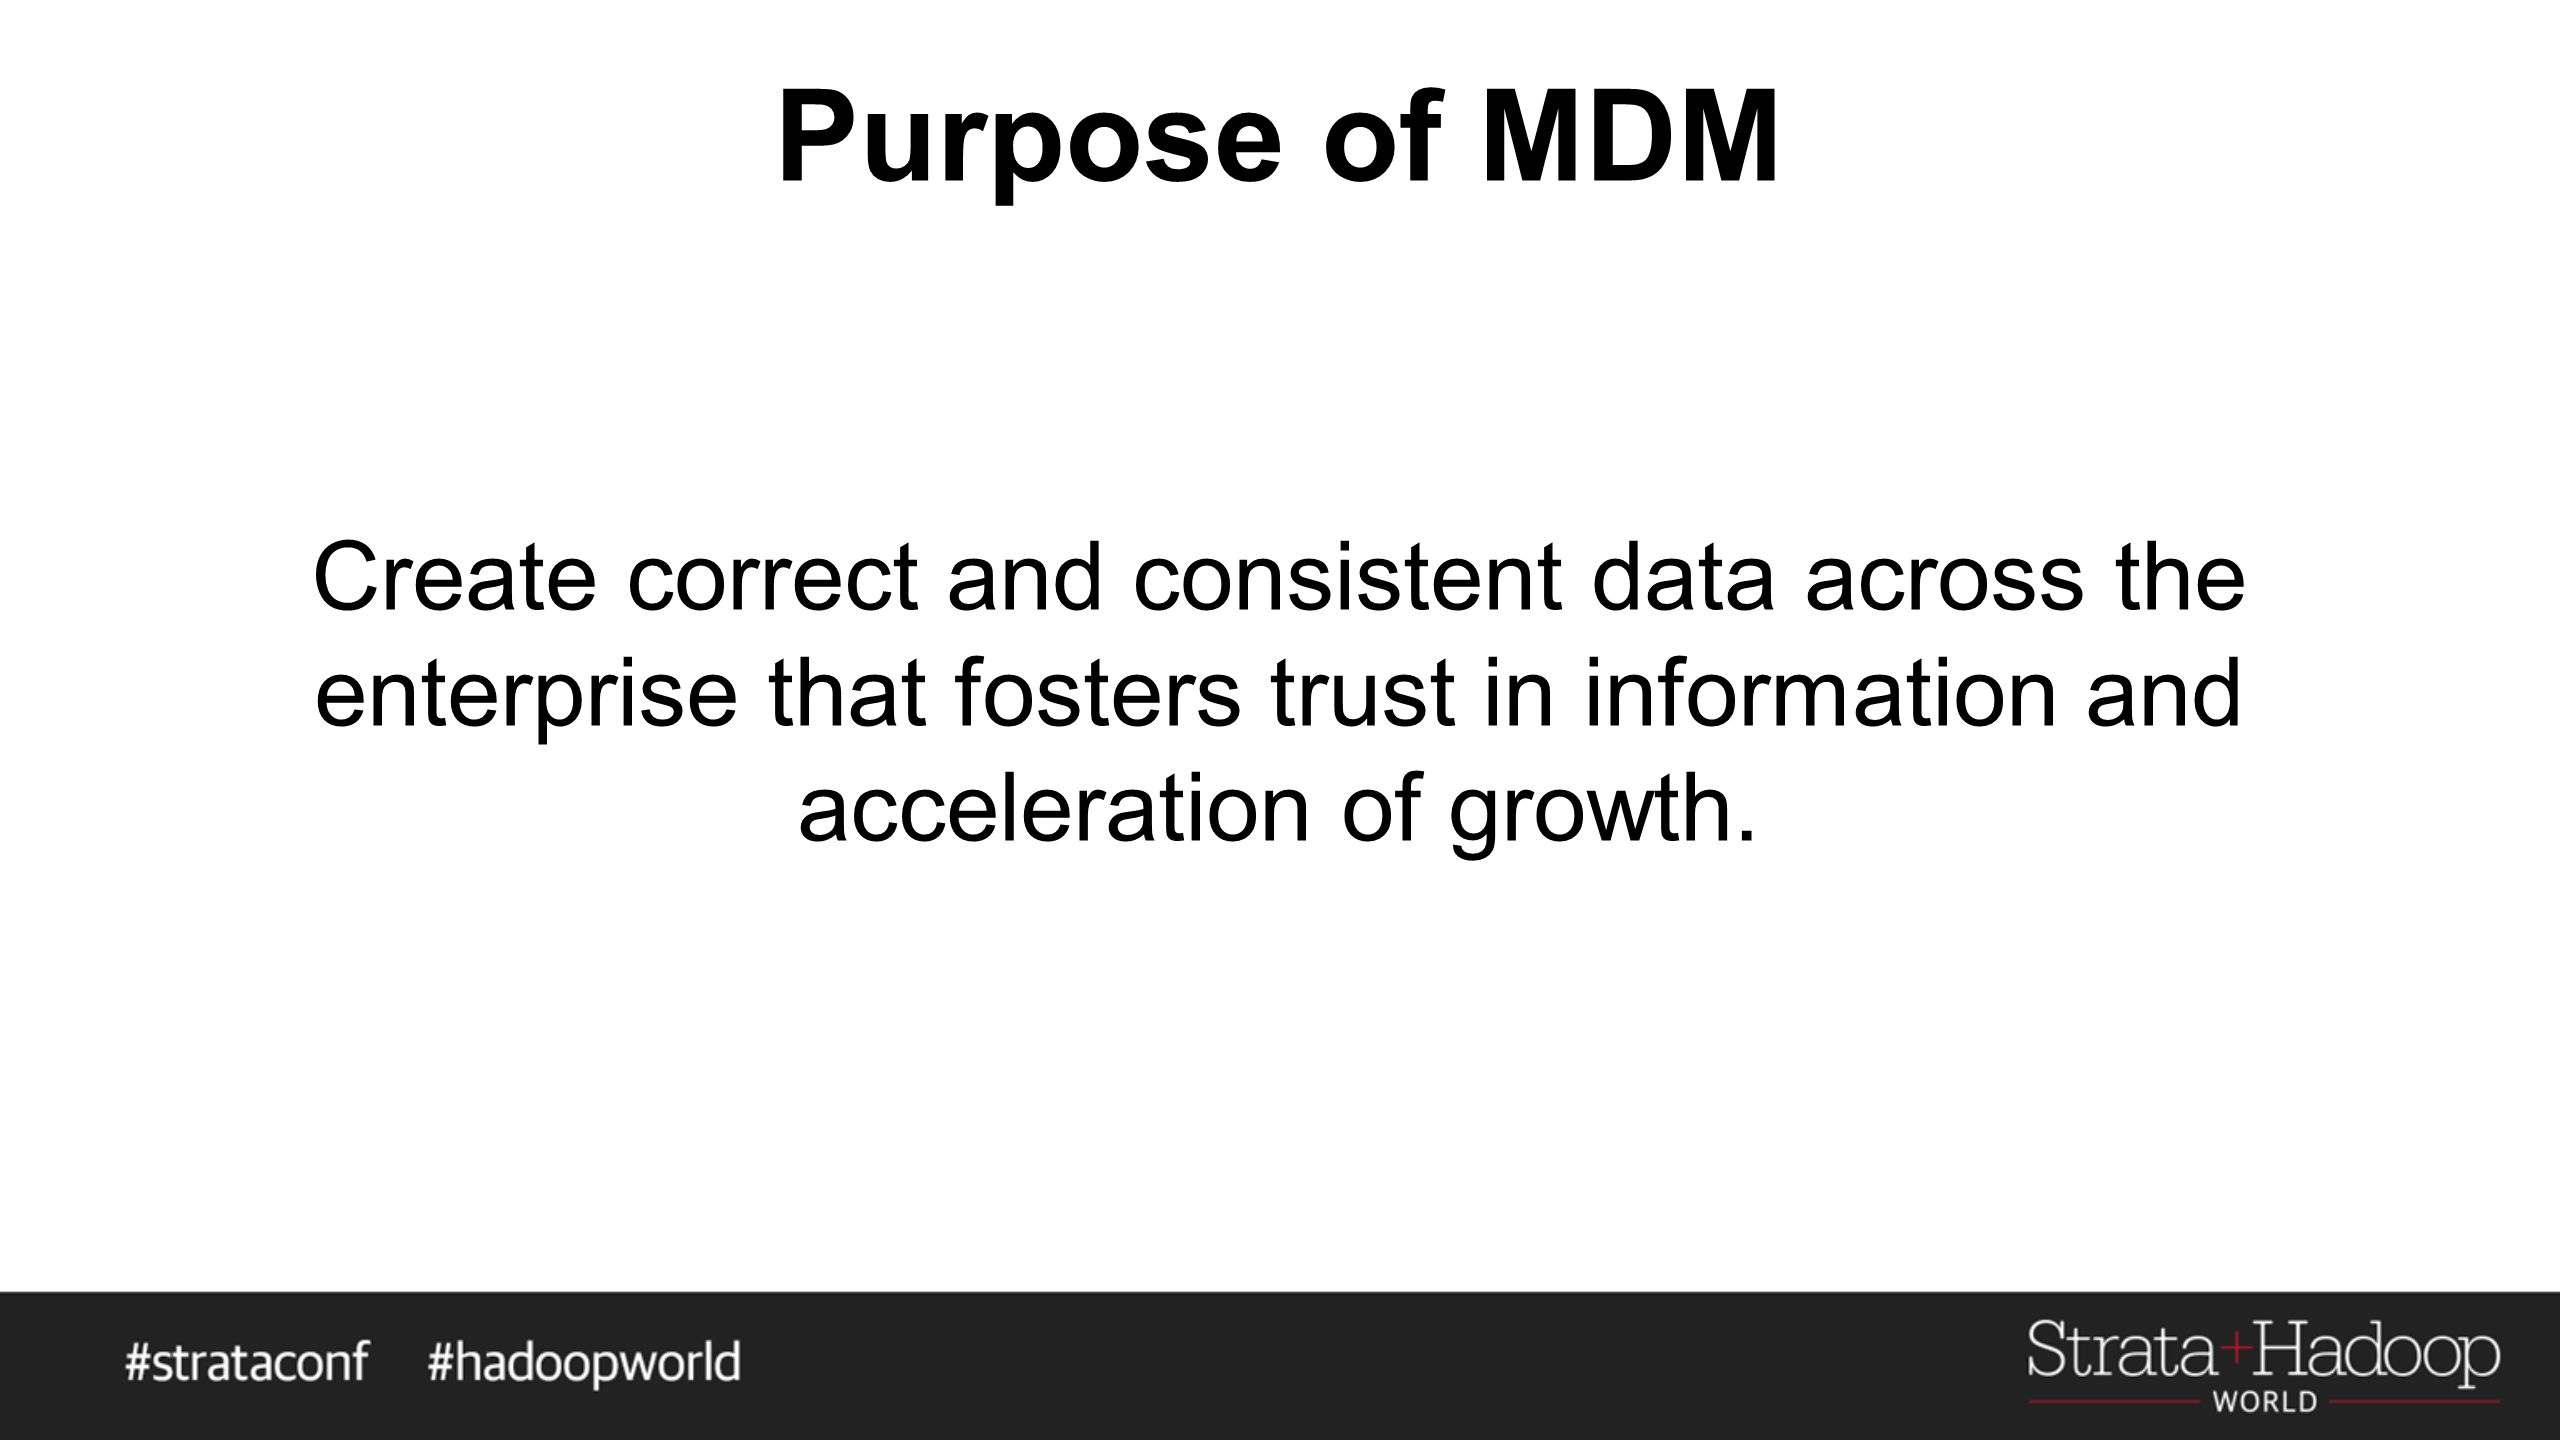 Purpose of MDM Create correct and consistent data across the enterprise that fosters trust in information and acceleration of growth.